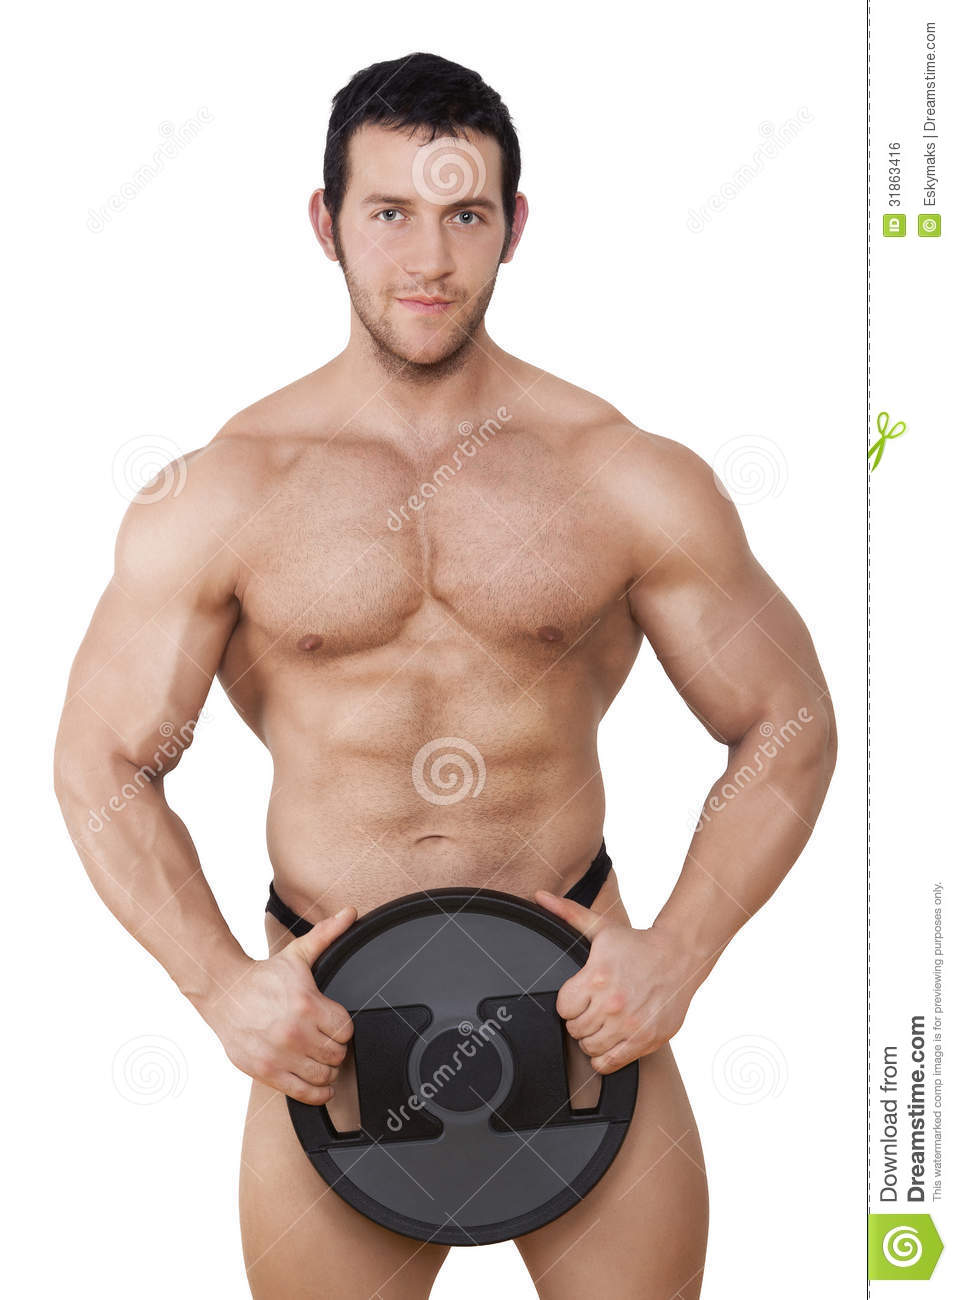 Muscular bodybuilder. stock photo. Image of person, posing